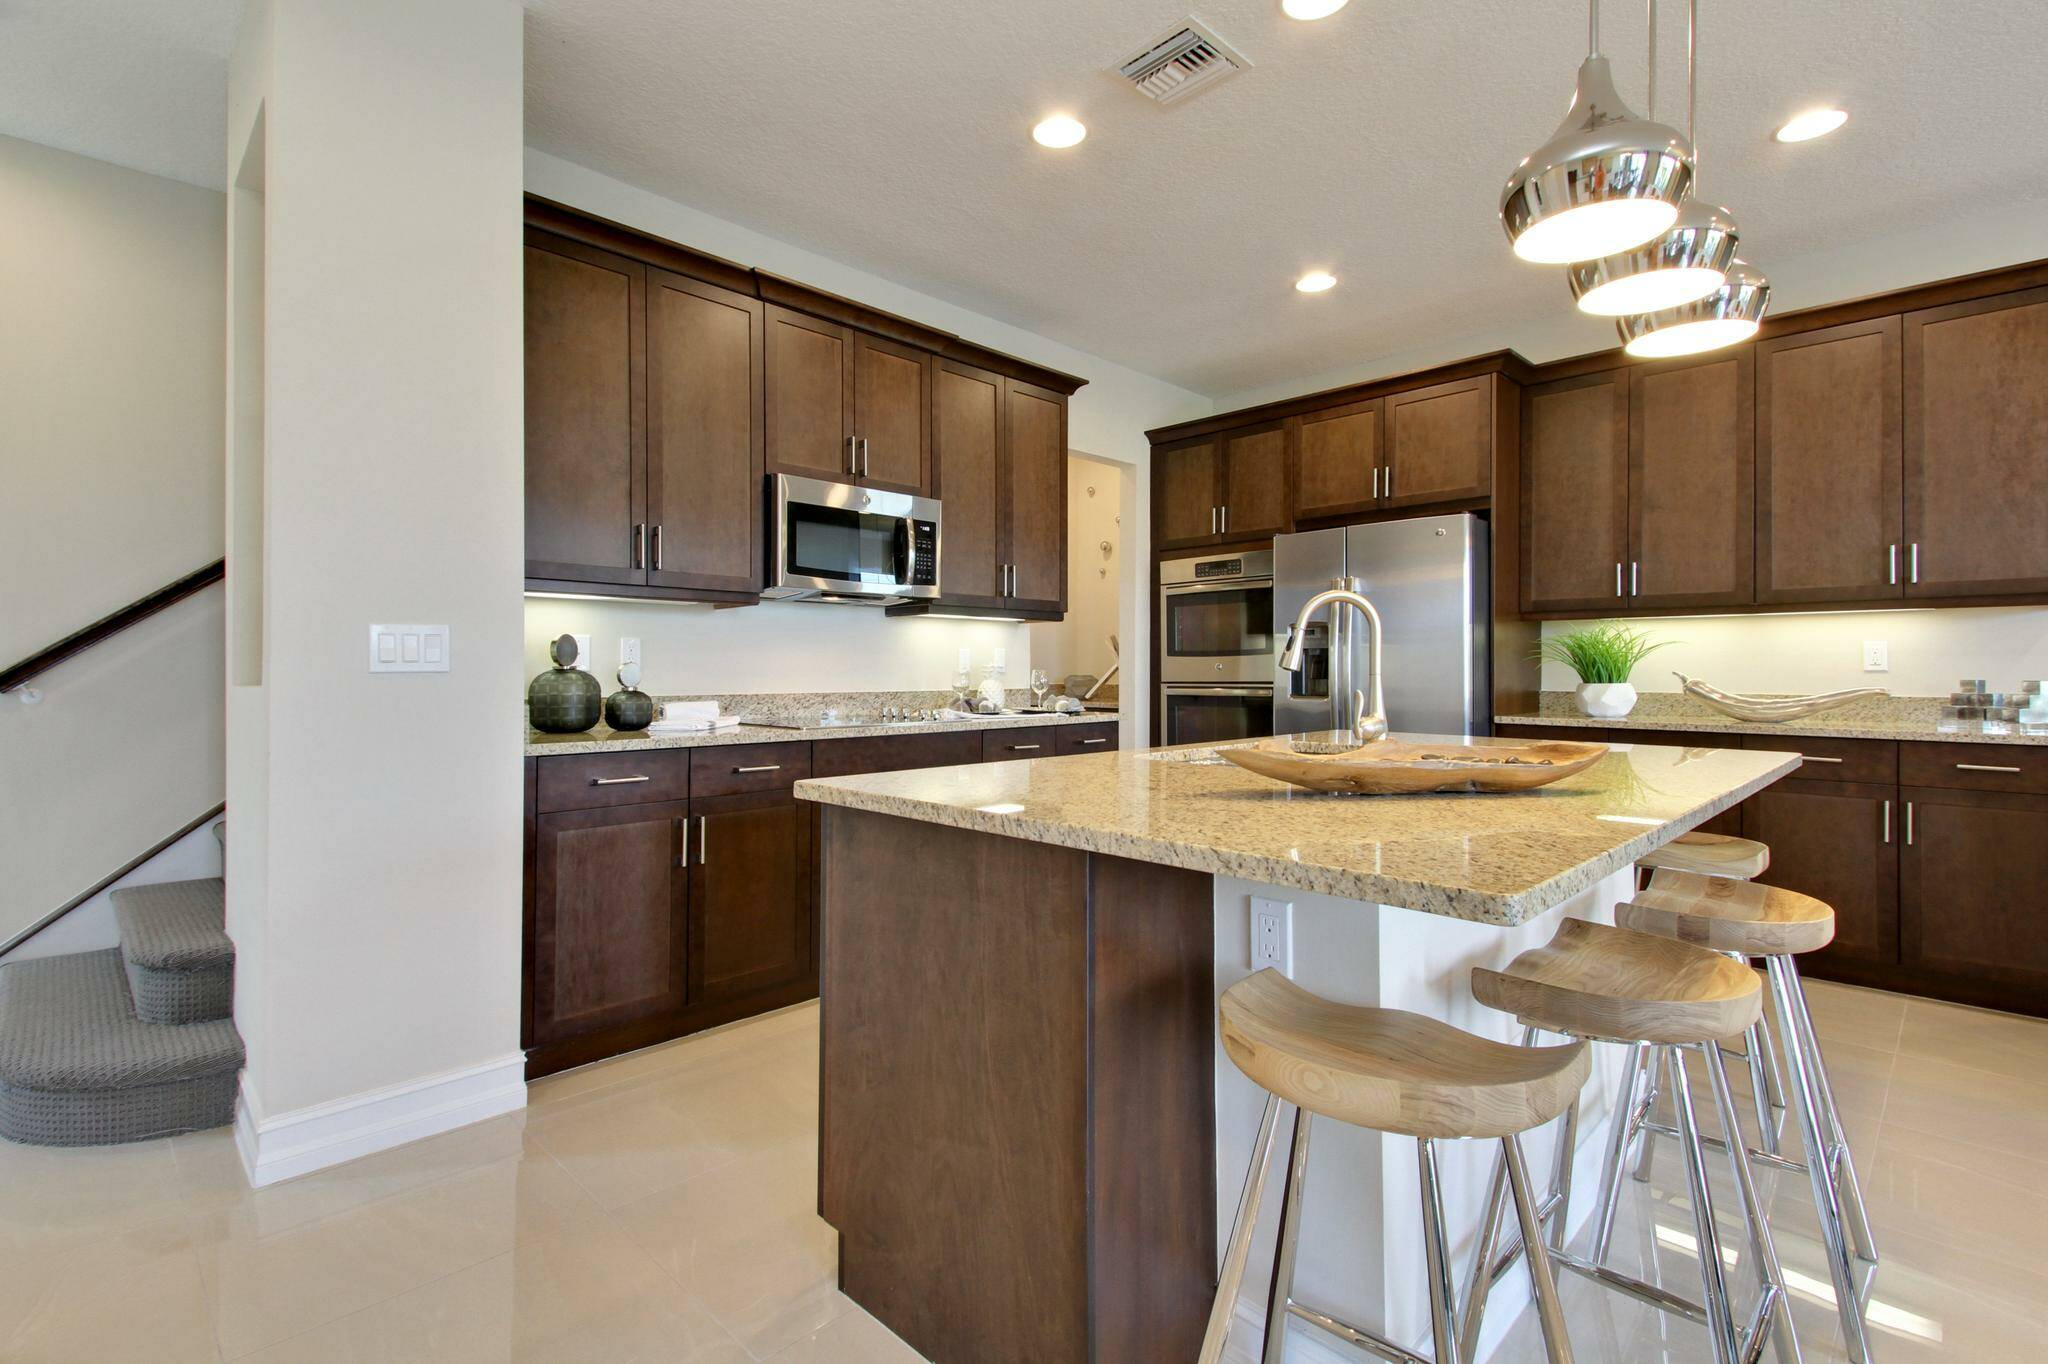 fullerton enclave kitchen a new homes in boca raton florida